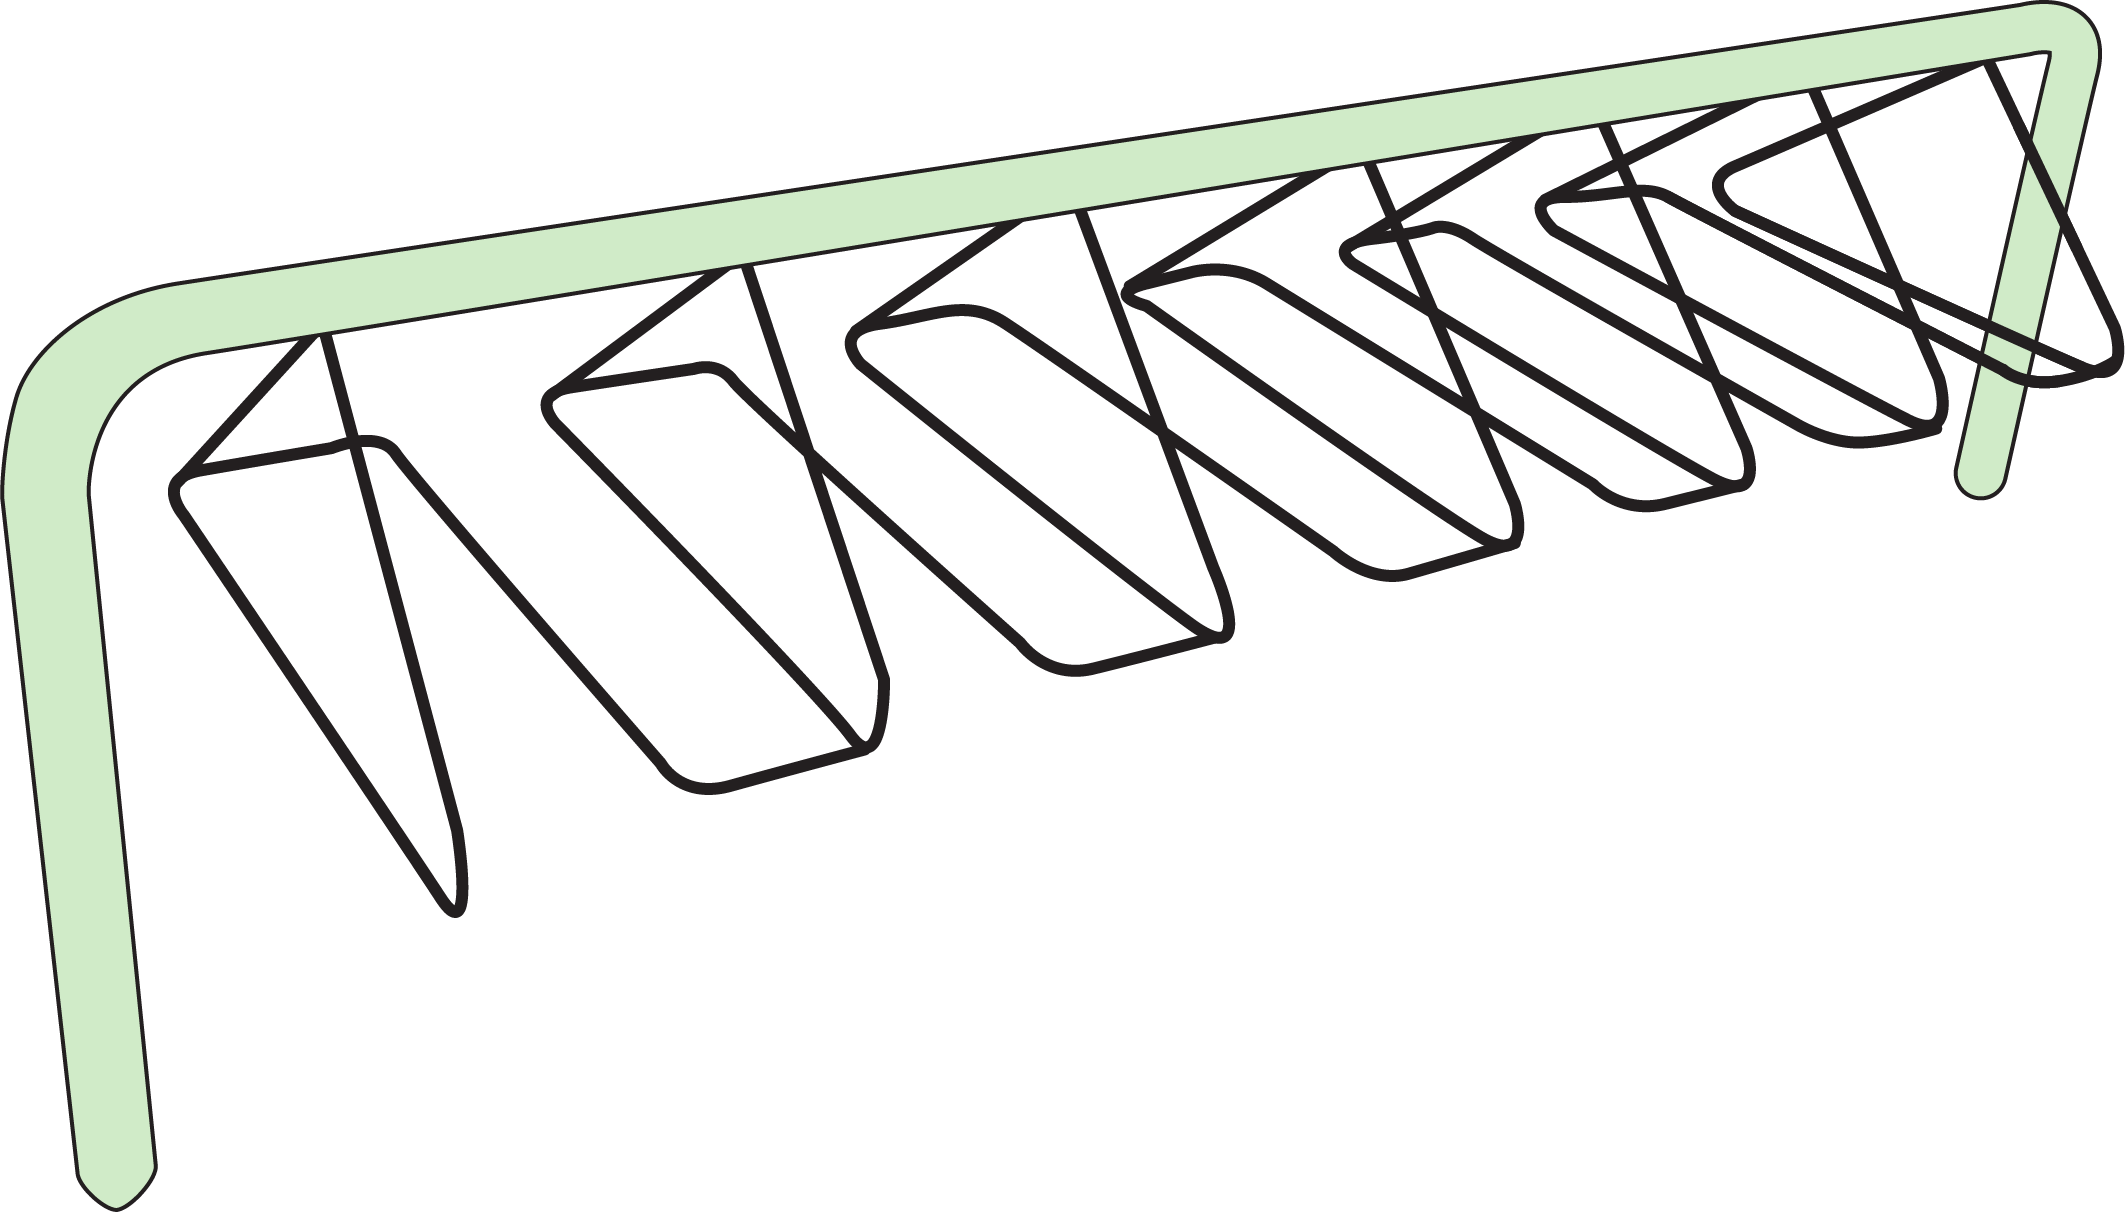 Illustration: coat hanger-style bike rack